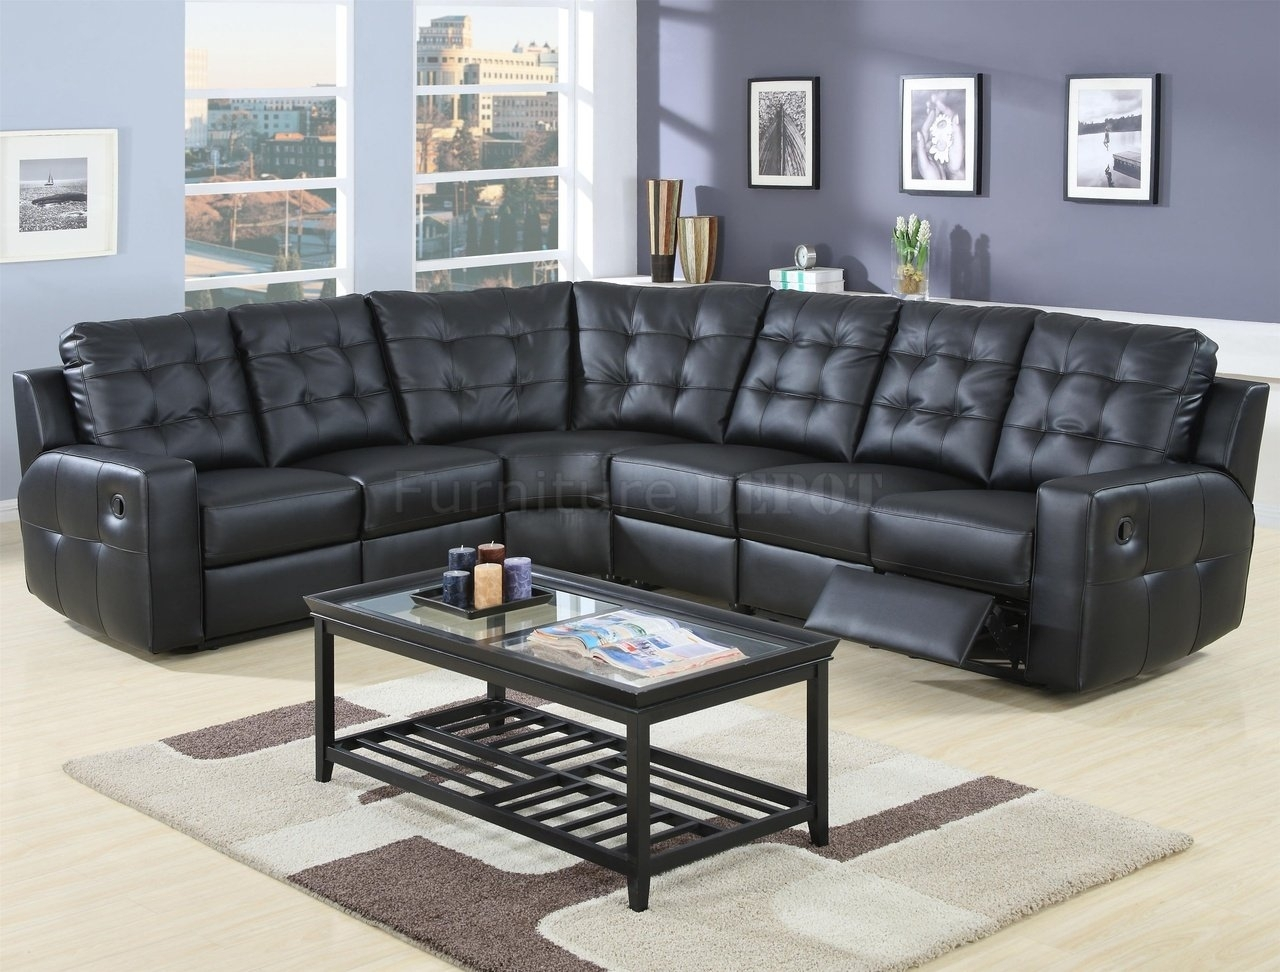 Great Sectional Sofas Austin Tx 24 About Remodel Sectional Sofas with regard to Jacksonville Florida Sectional Sofas (Image 3 of 10)